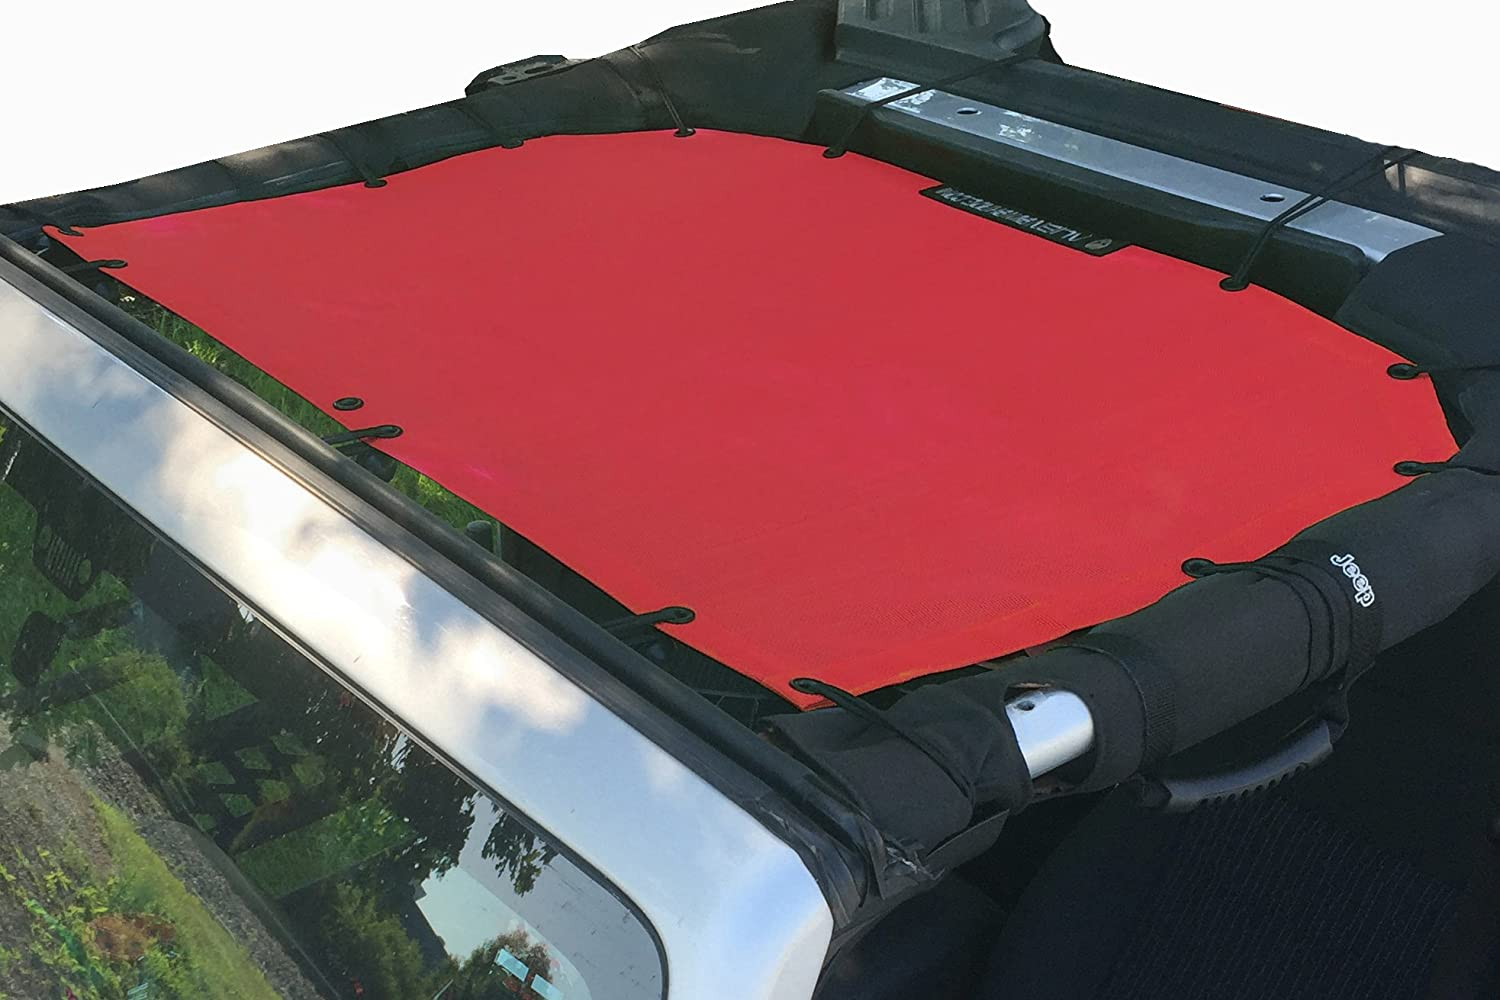 20fbe668647 Alien Sunshade Jeep Wrangler Mesh Shade Top Cover with 10 Year Warranty  Provides UV Protection for Front Passengers 2-Door or 4-Door JK or JKU  (2007-2017) ...